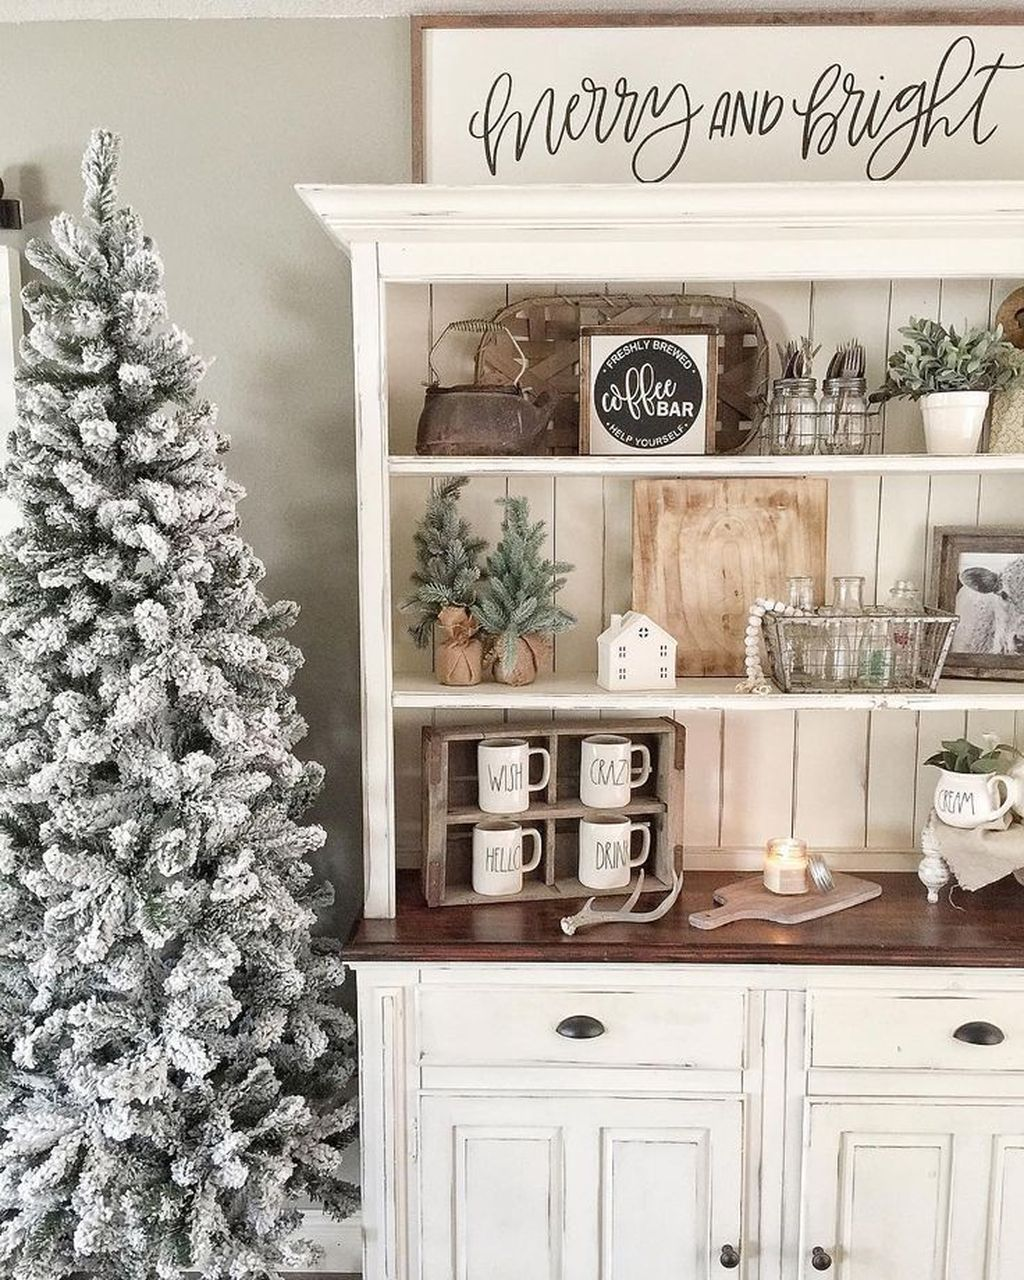 Inspiring Winter Kitchen Decor Ideas You Can Try 12